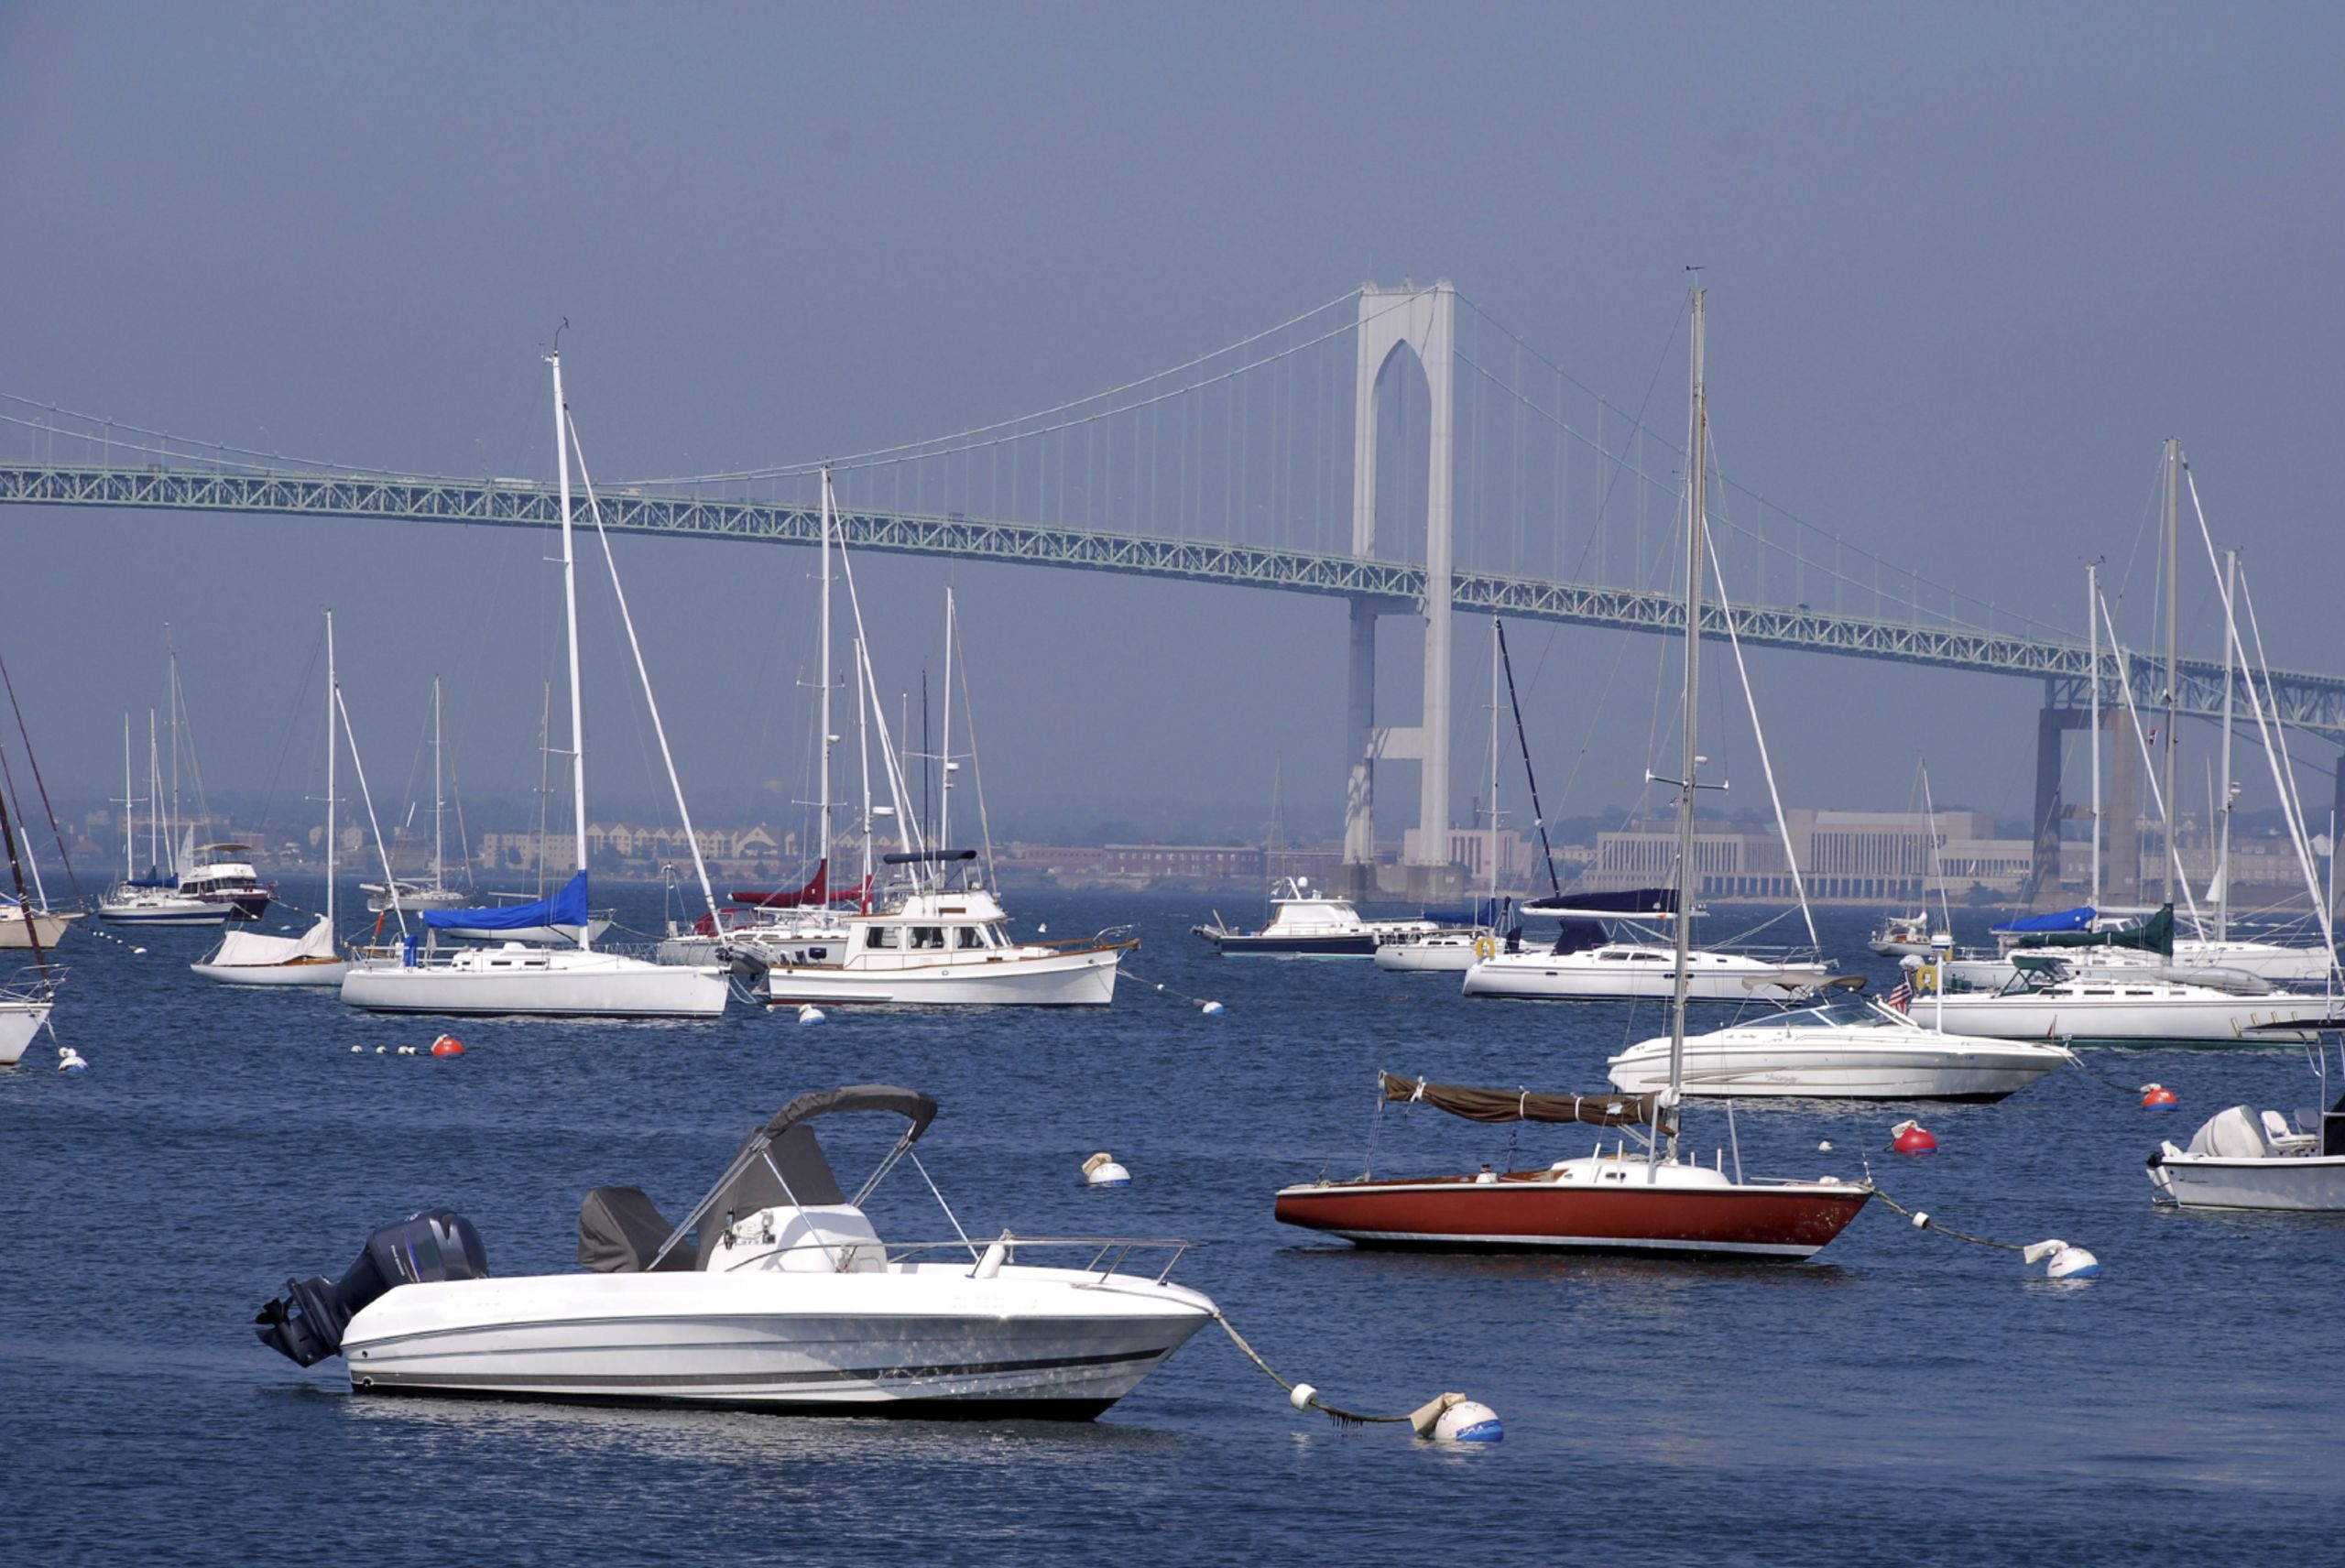 Newport Bridge and Boats